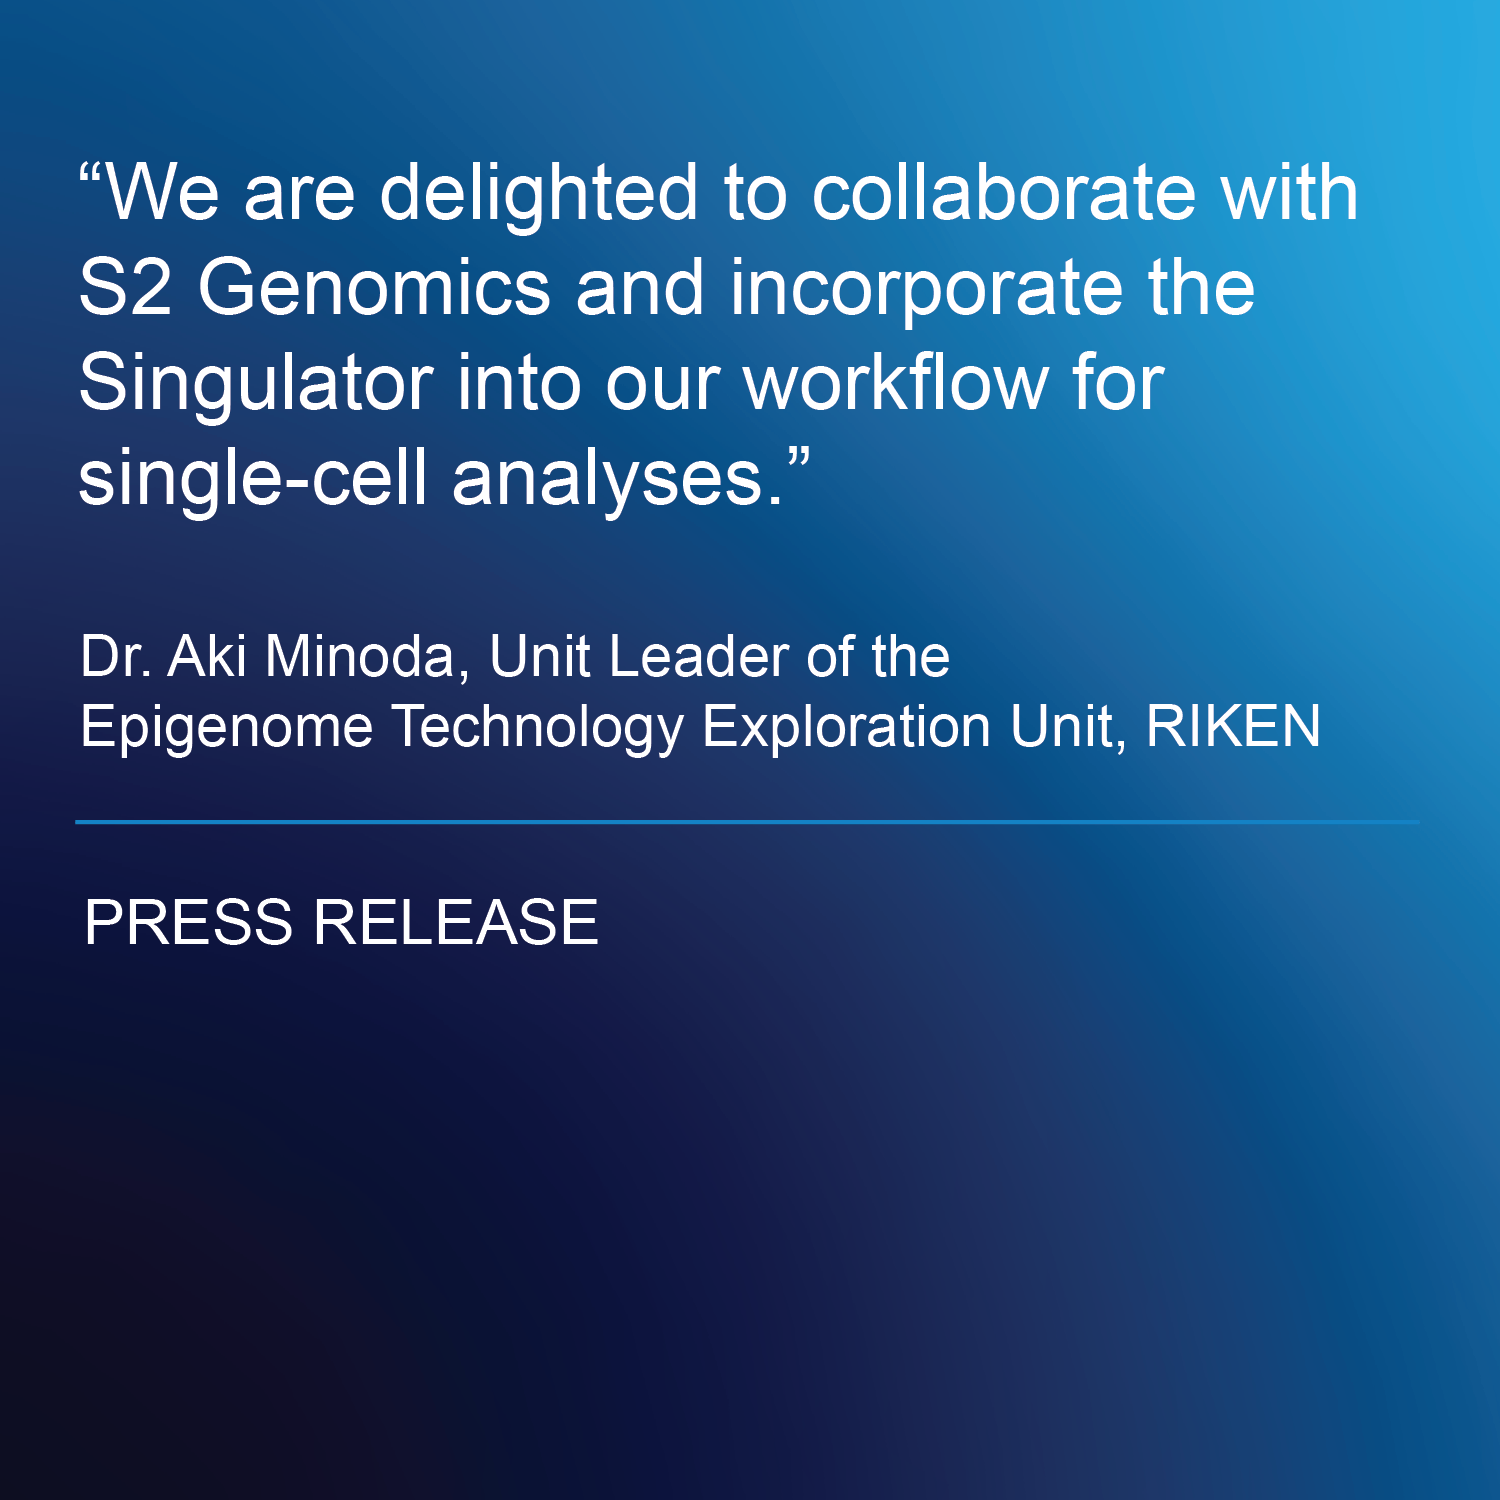 S2 Genomics and the RIKEN Center for Integrative Medical Sciences Collaborate on Single-Cell Genomics on Solid Tissues